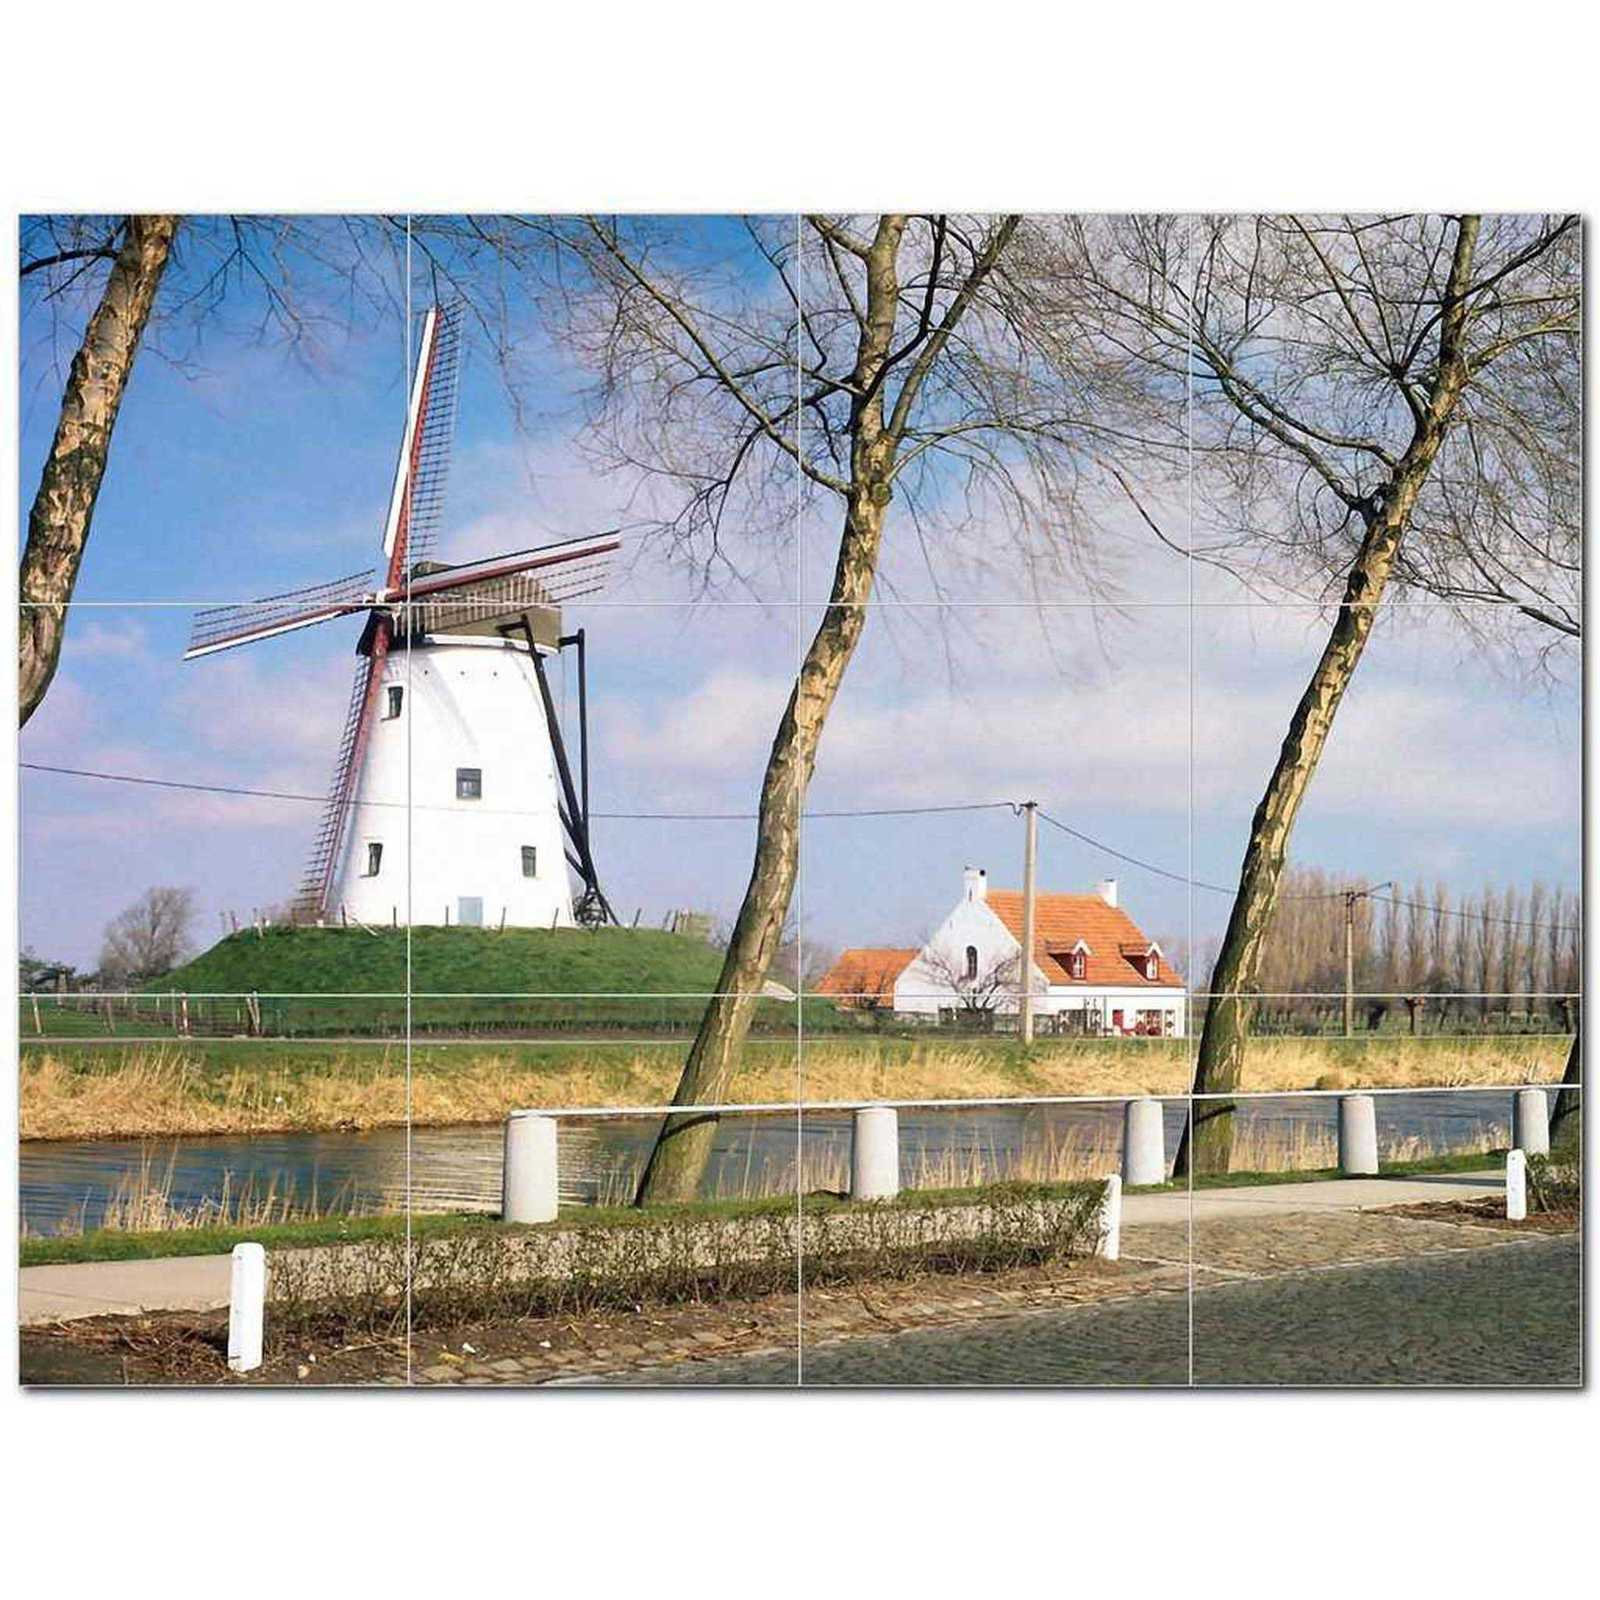 Primary image for Windmill Photo Ceramic Tile Mural Kitchen Backsplash Bathroom Shower BAZ406339